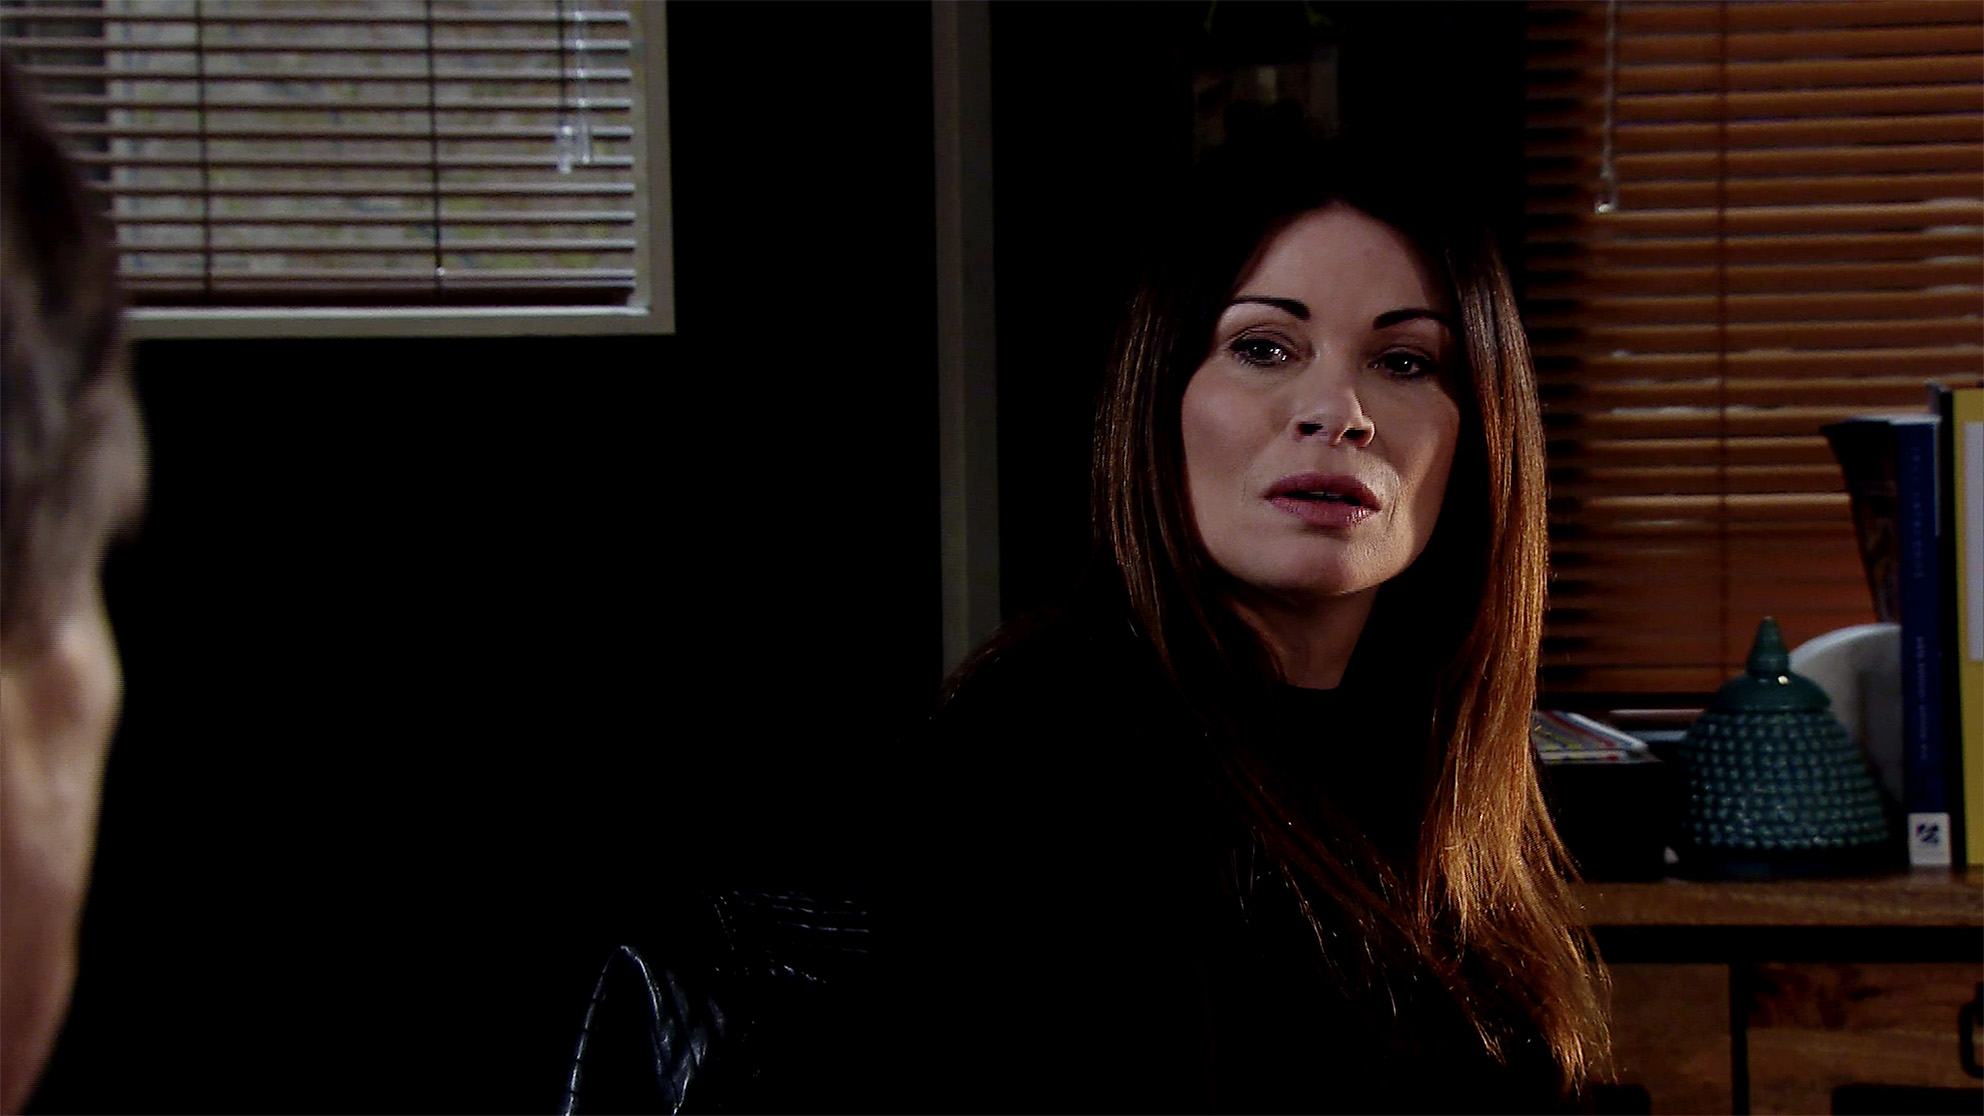 Carla is heading for a break down but who will save her?